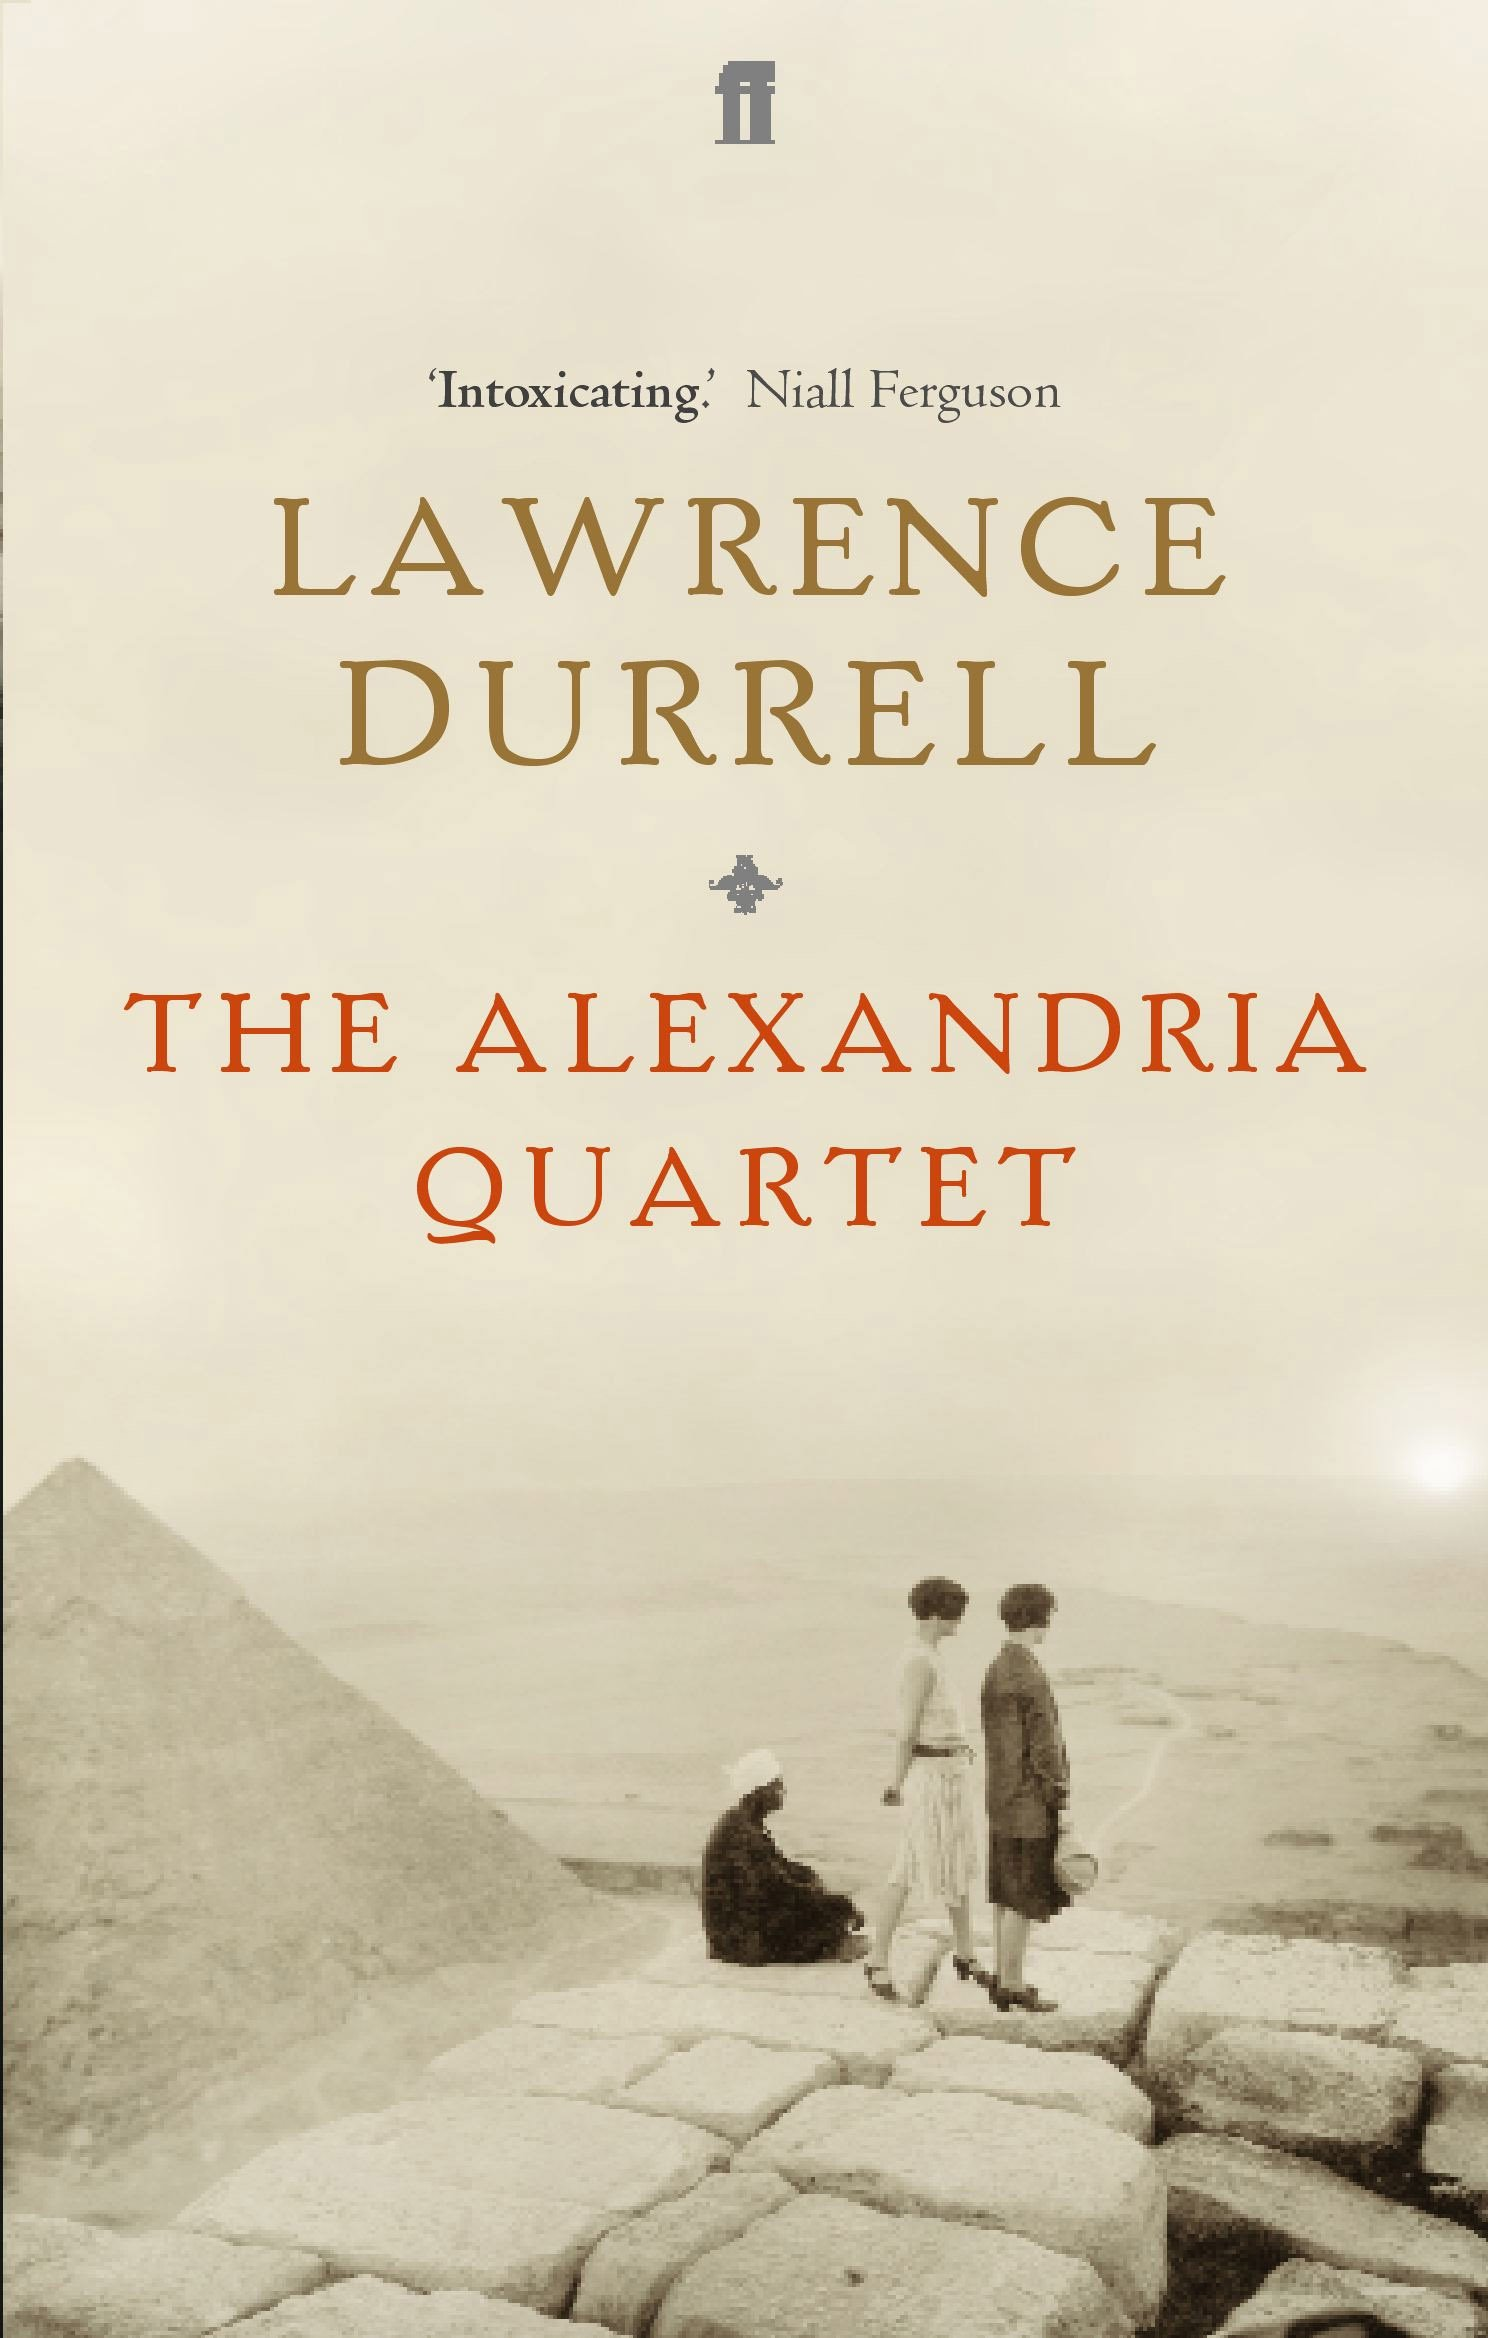 The Alexandria Quartet is a tetralogy of novels by British writer Lawrence Durrell, published between 1957 and 1960.